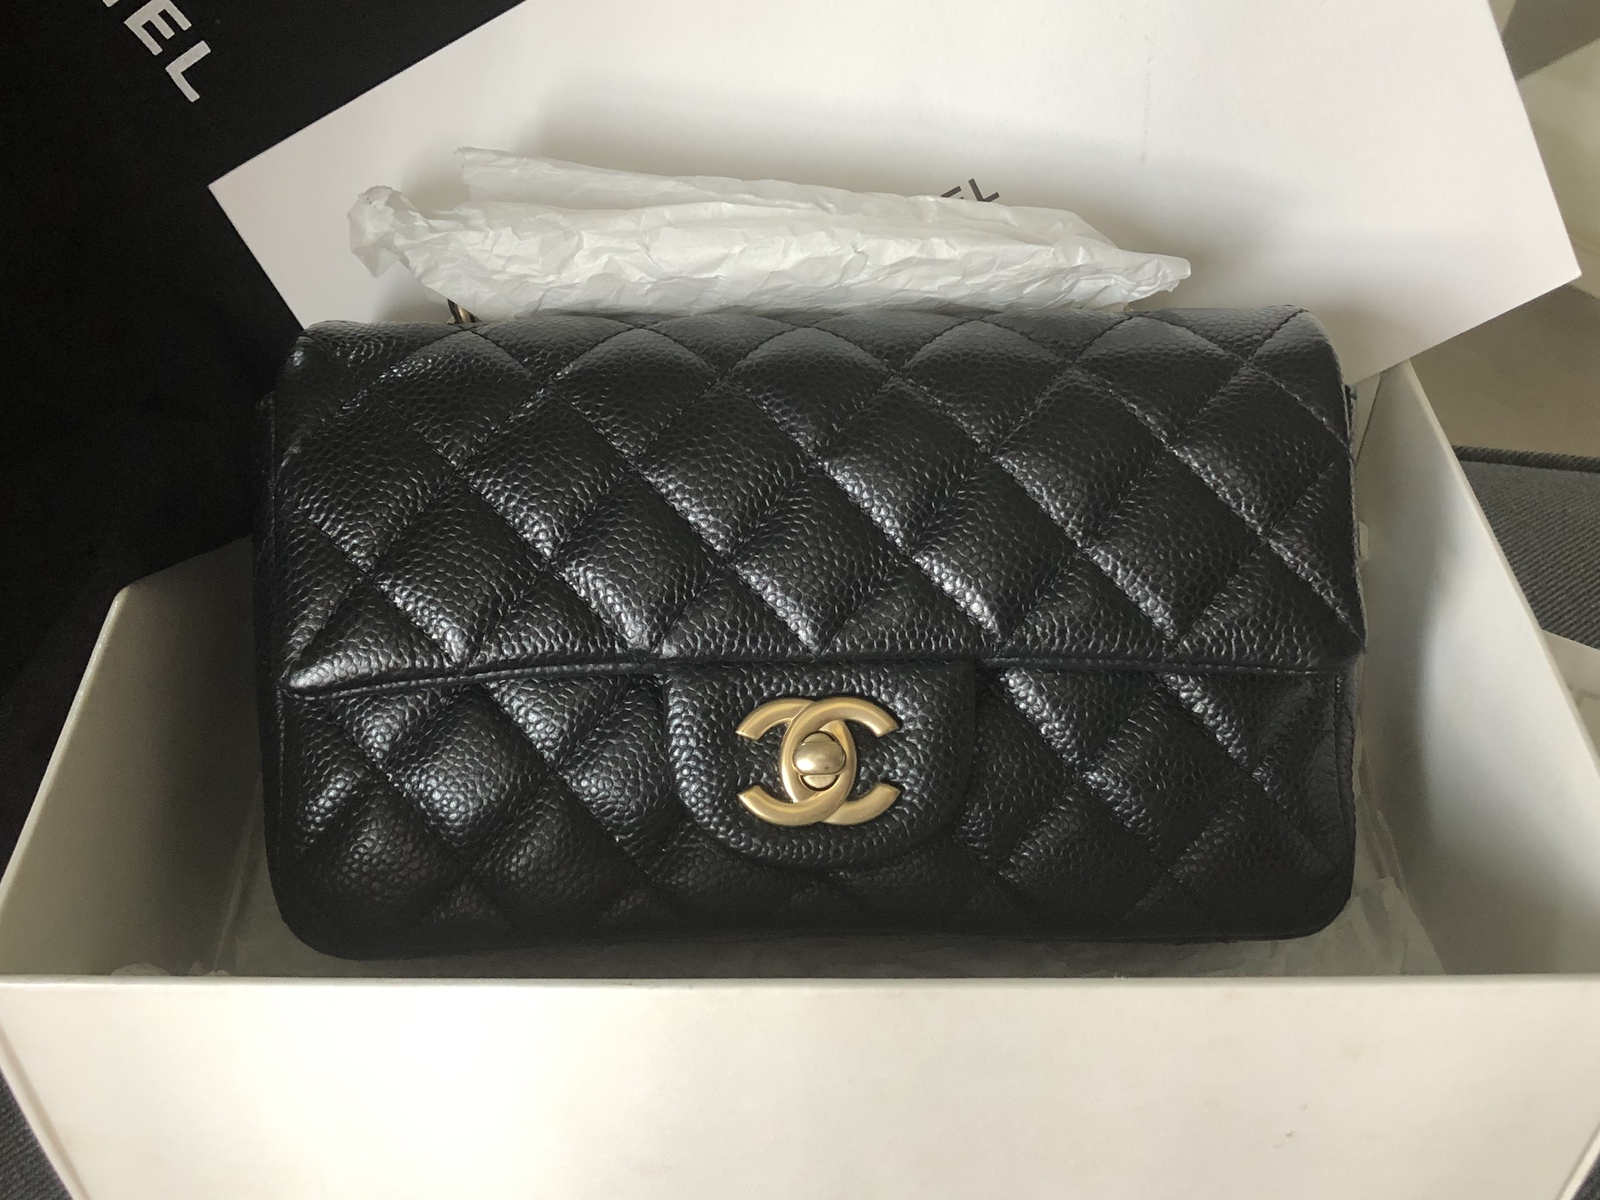 42cff0b45ee2 100% AUTH CHANEL BLACK CAVIAR LARGE MINI 20CM RECTANGULAR FLAP BAG ...